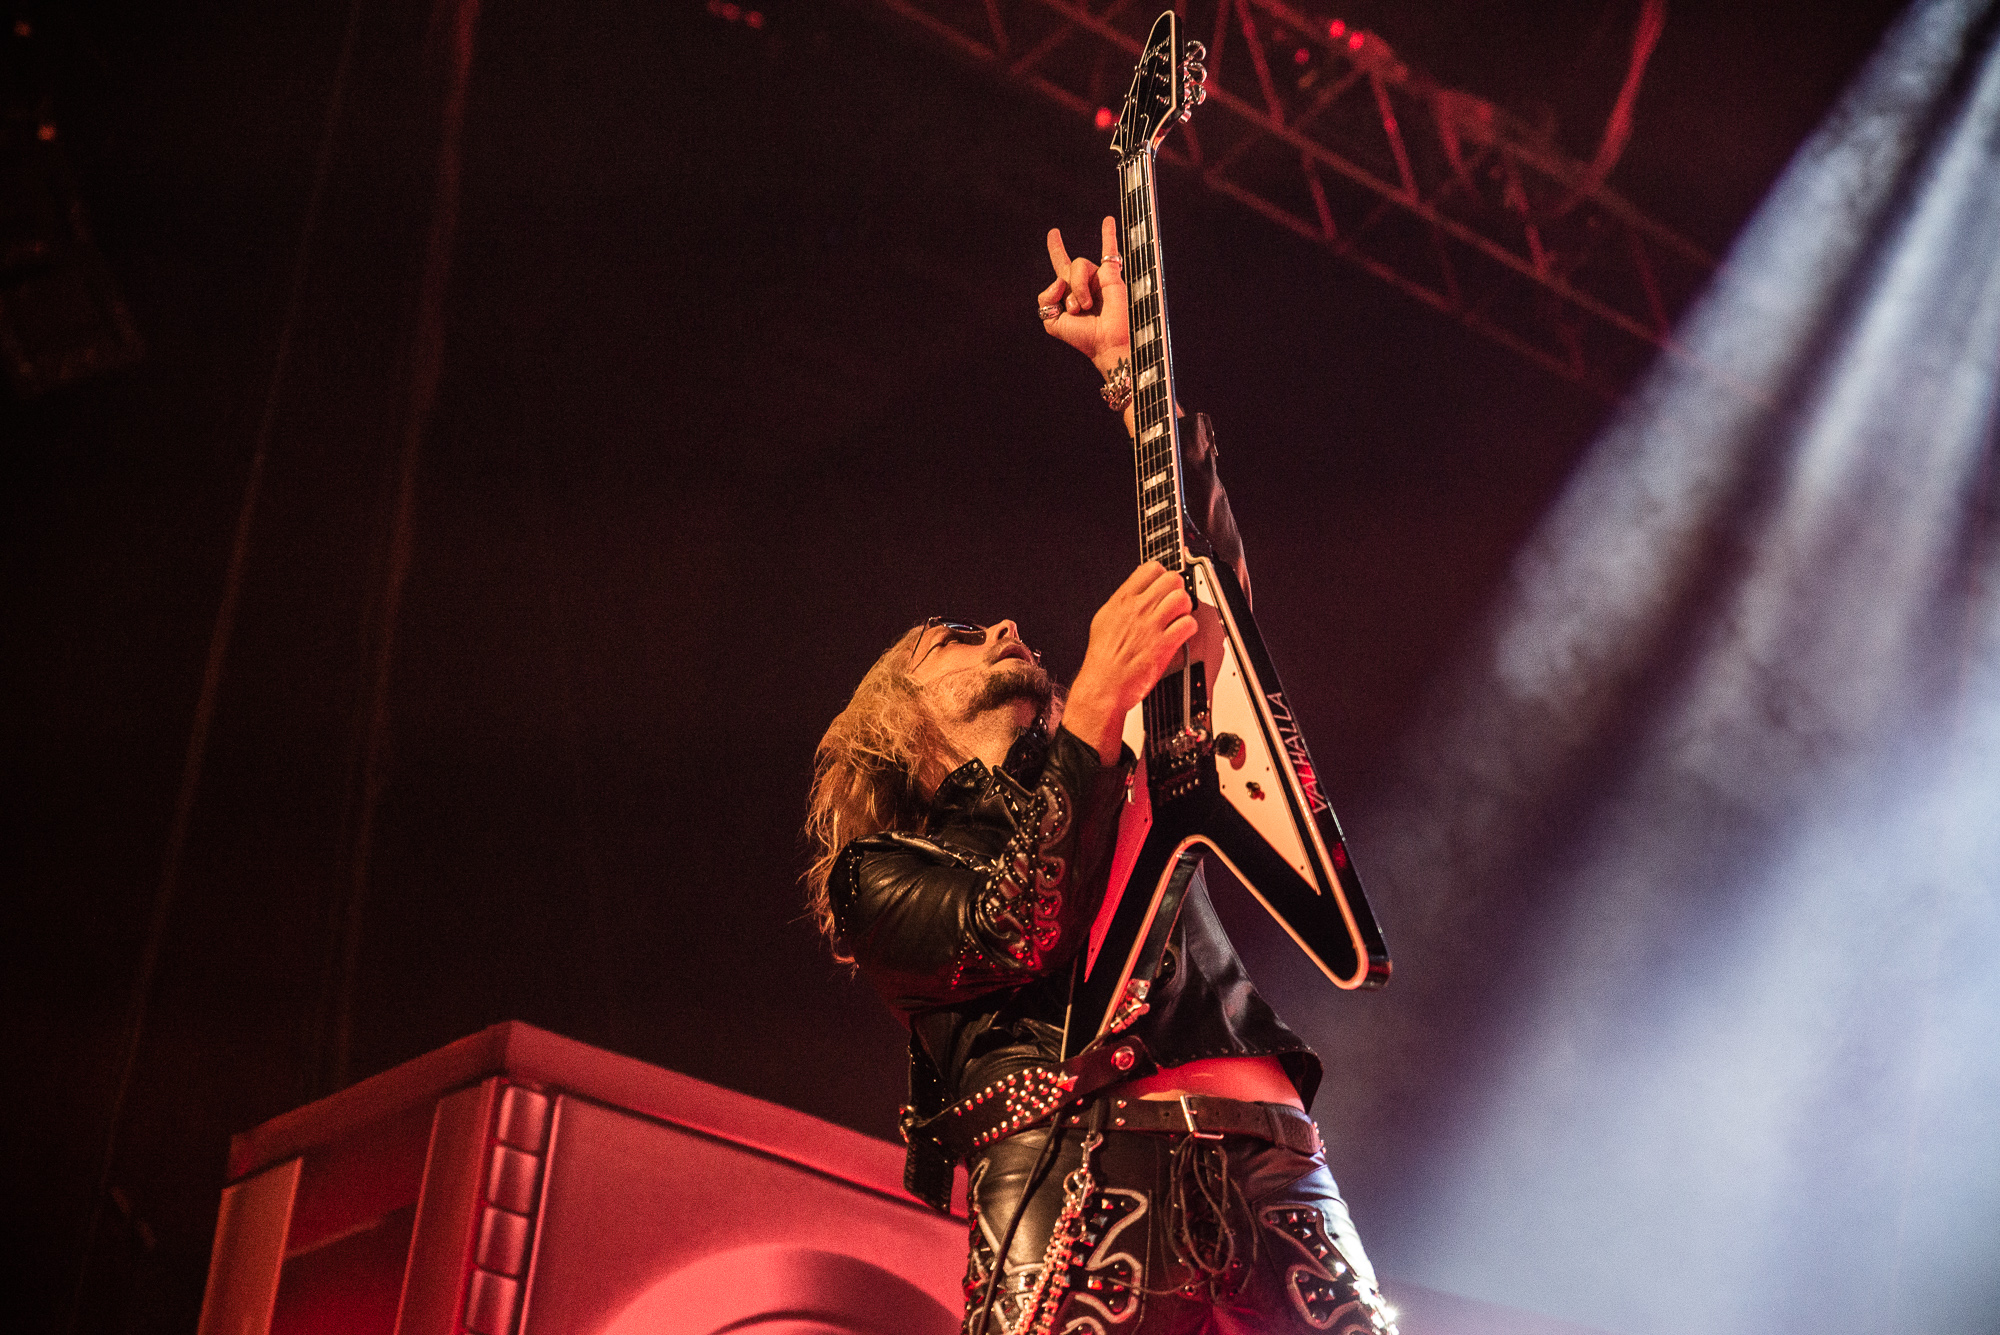 05062018_Judas_Priest@OS_DH_WillyLarsenPhotography (17 of 35)